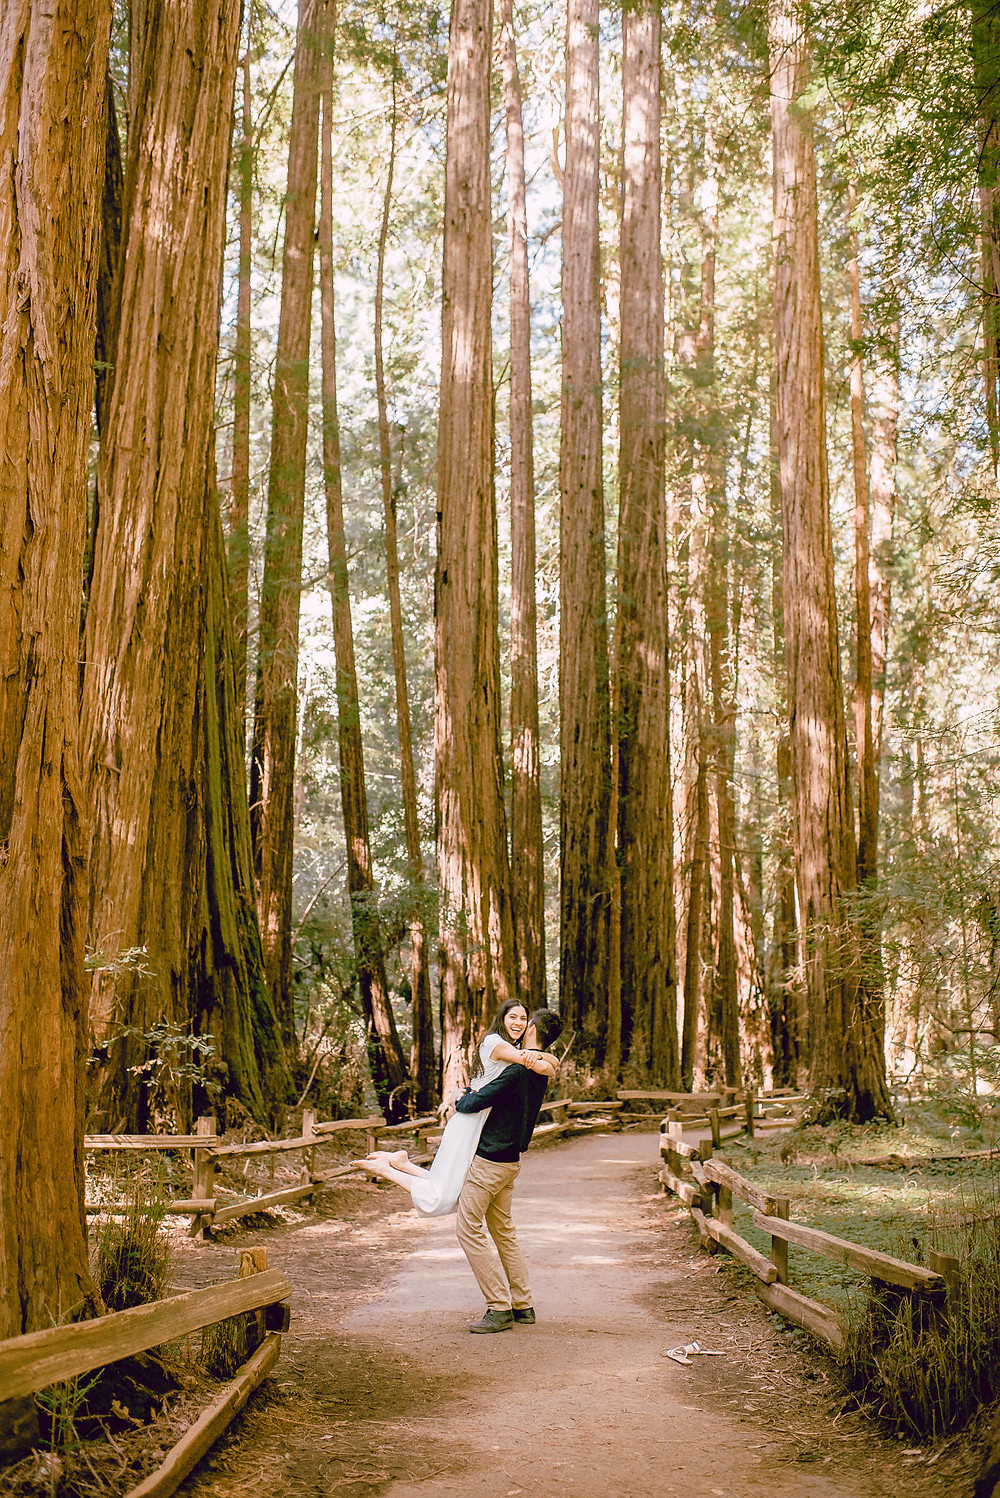 Fun Engagement Session in the Redwoods of California